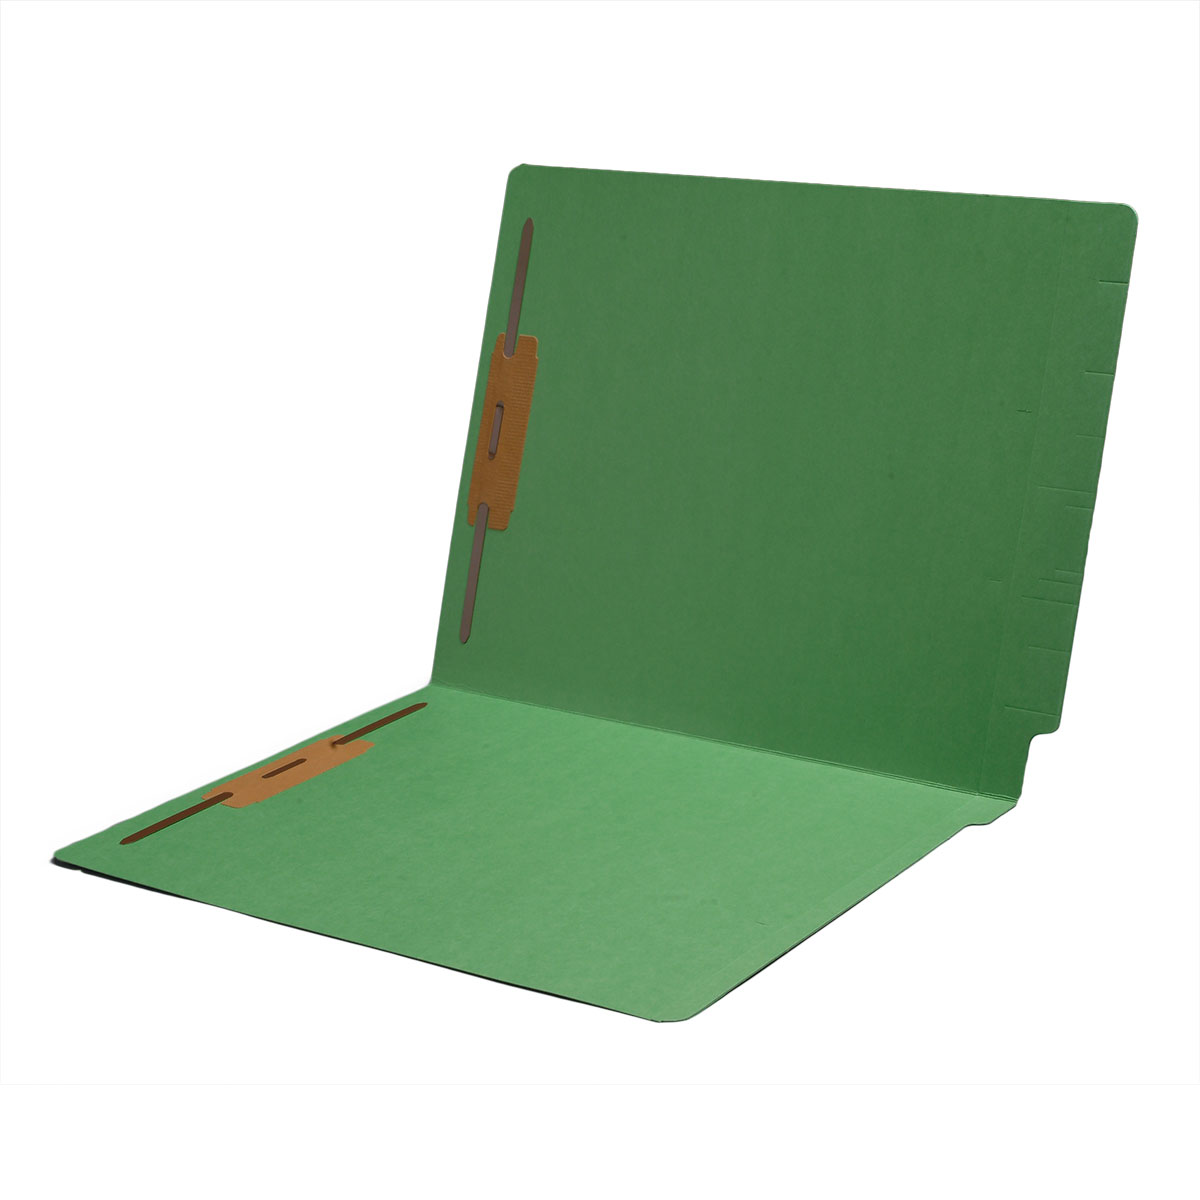 S-1602-GRN - 14 pt Color Folders, Full Cut 2-Ply End Tab, Letter Size, 2 Fasteners in Pos #1 & #3, Green (Box of 50)